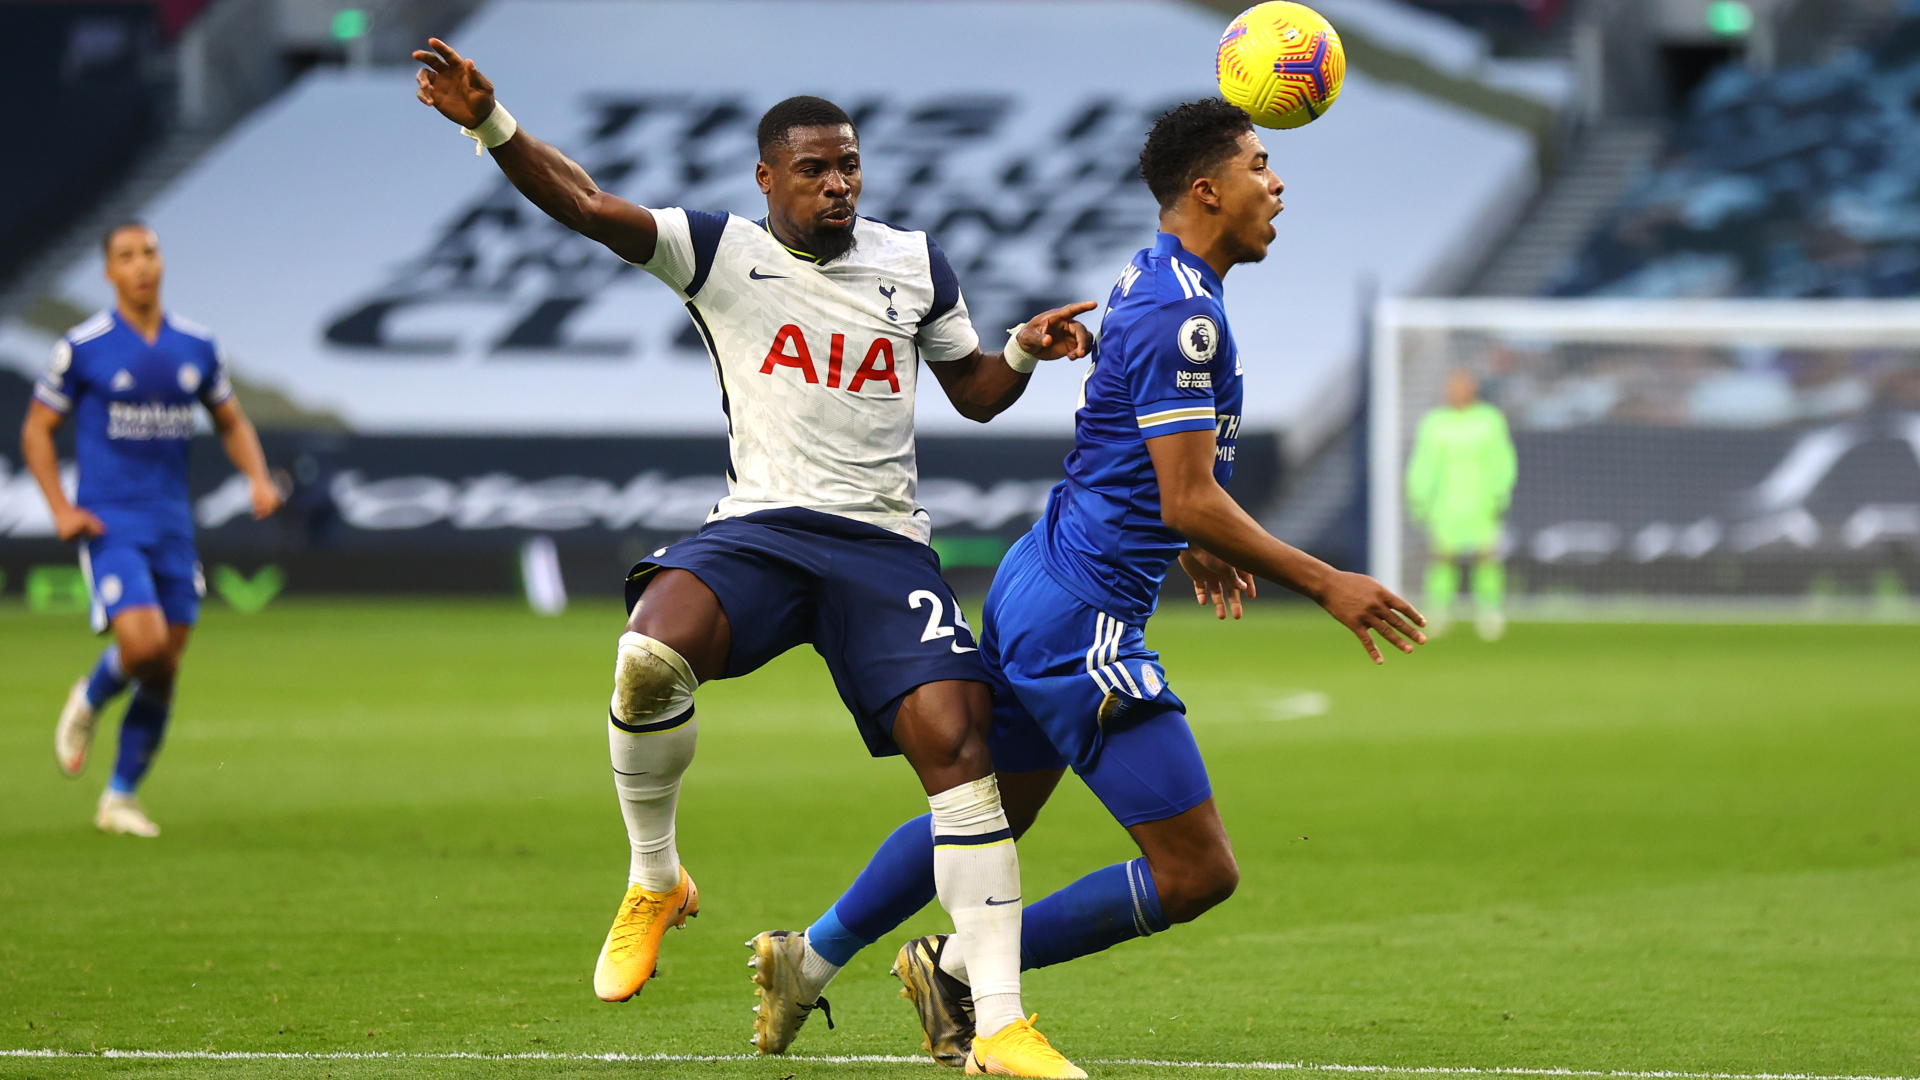 'It was a mistake, not a moment of madness' – Mourinho defends Aurier after Tottenham loss